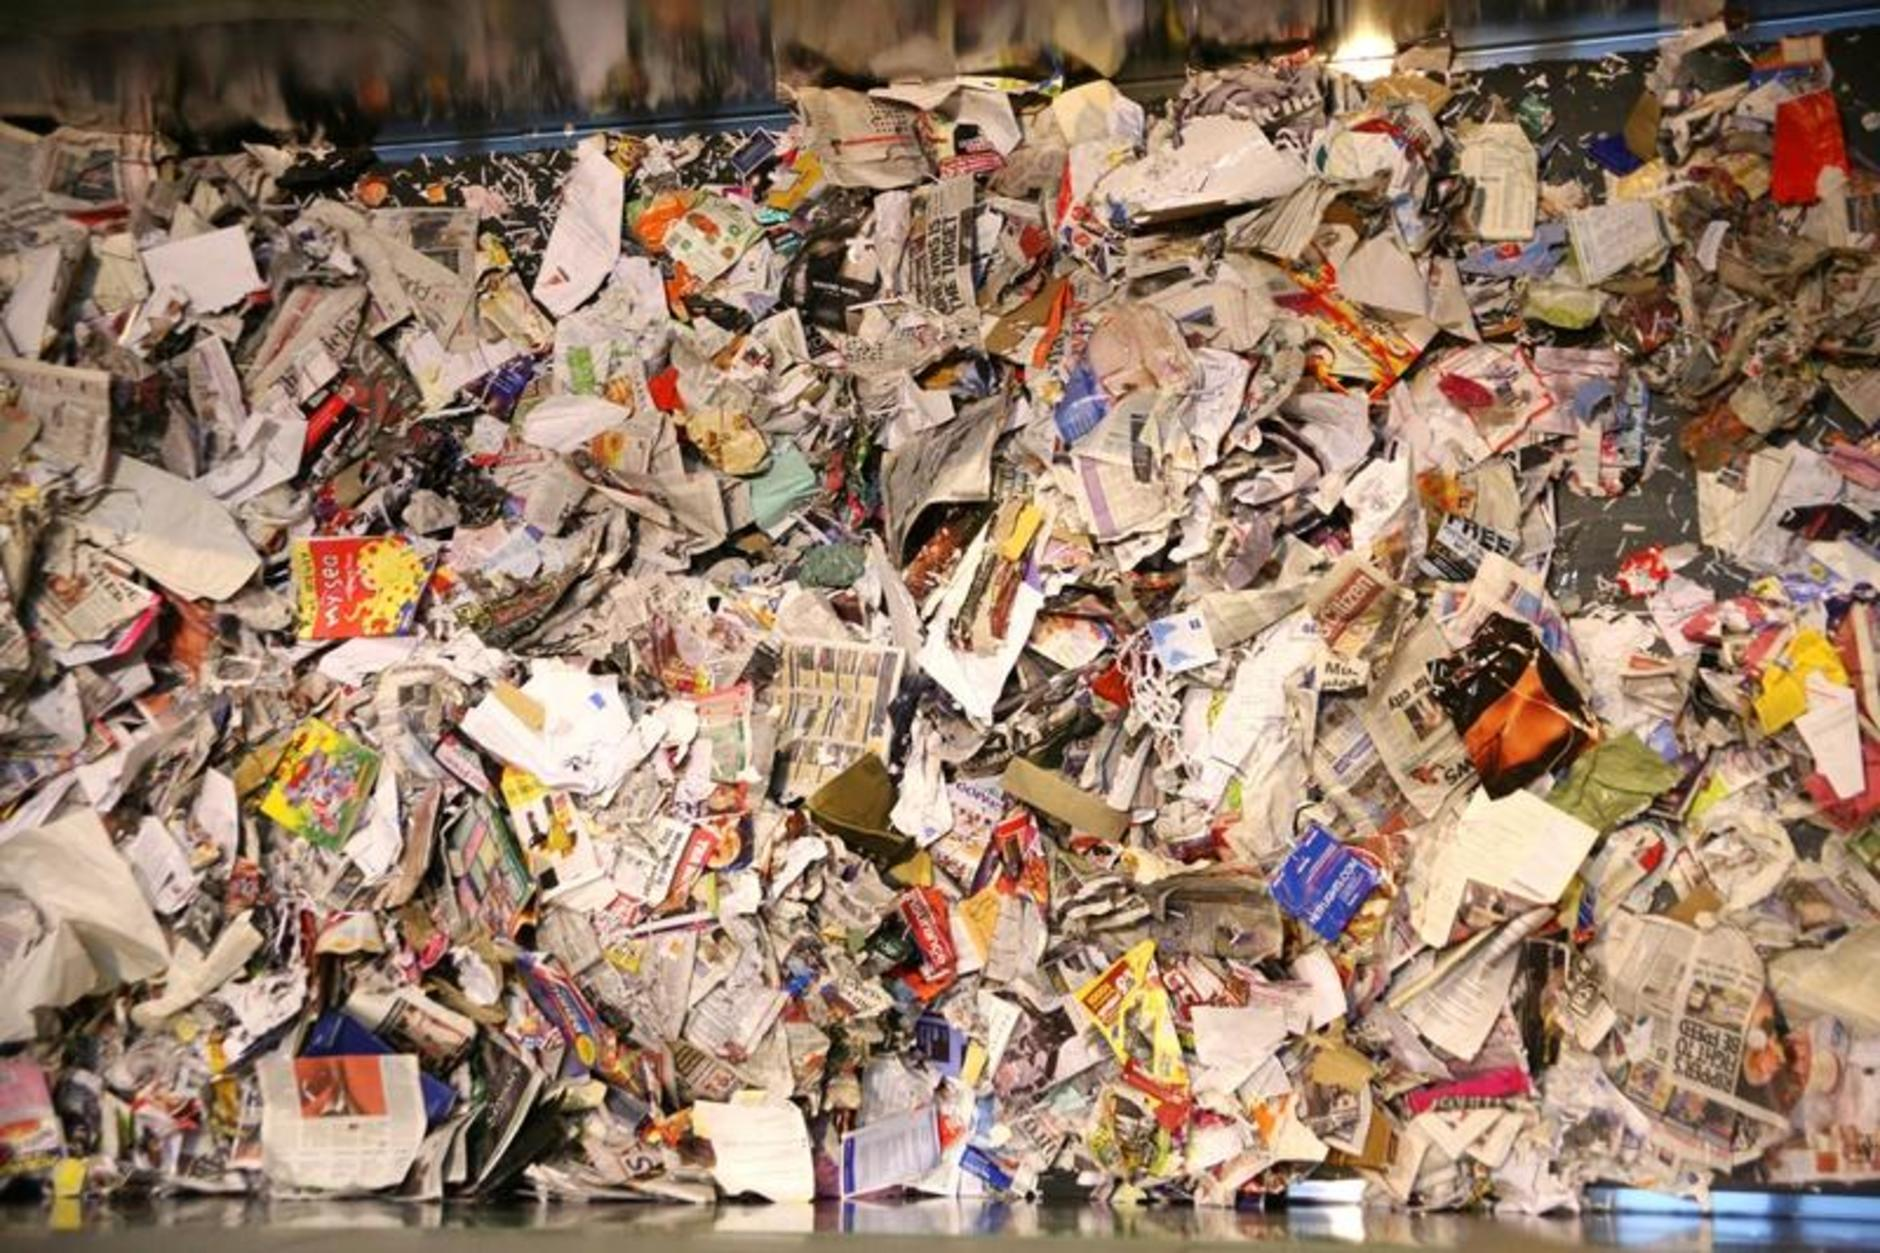 Illegal waste site 'size of three football pitches' | Commercial Motor